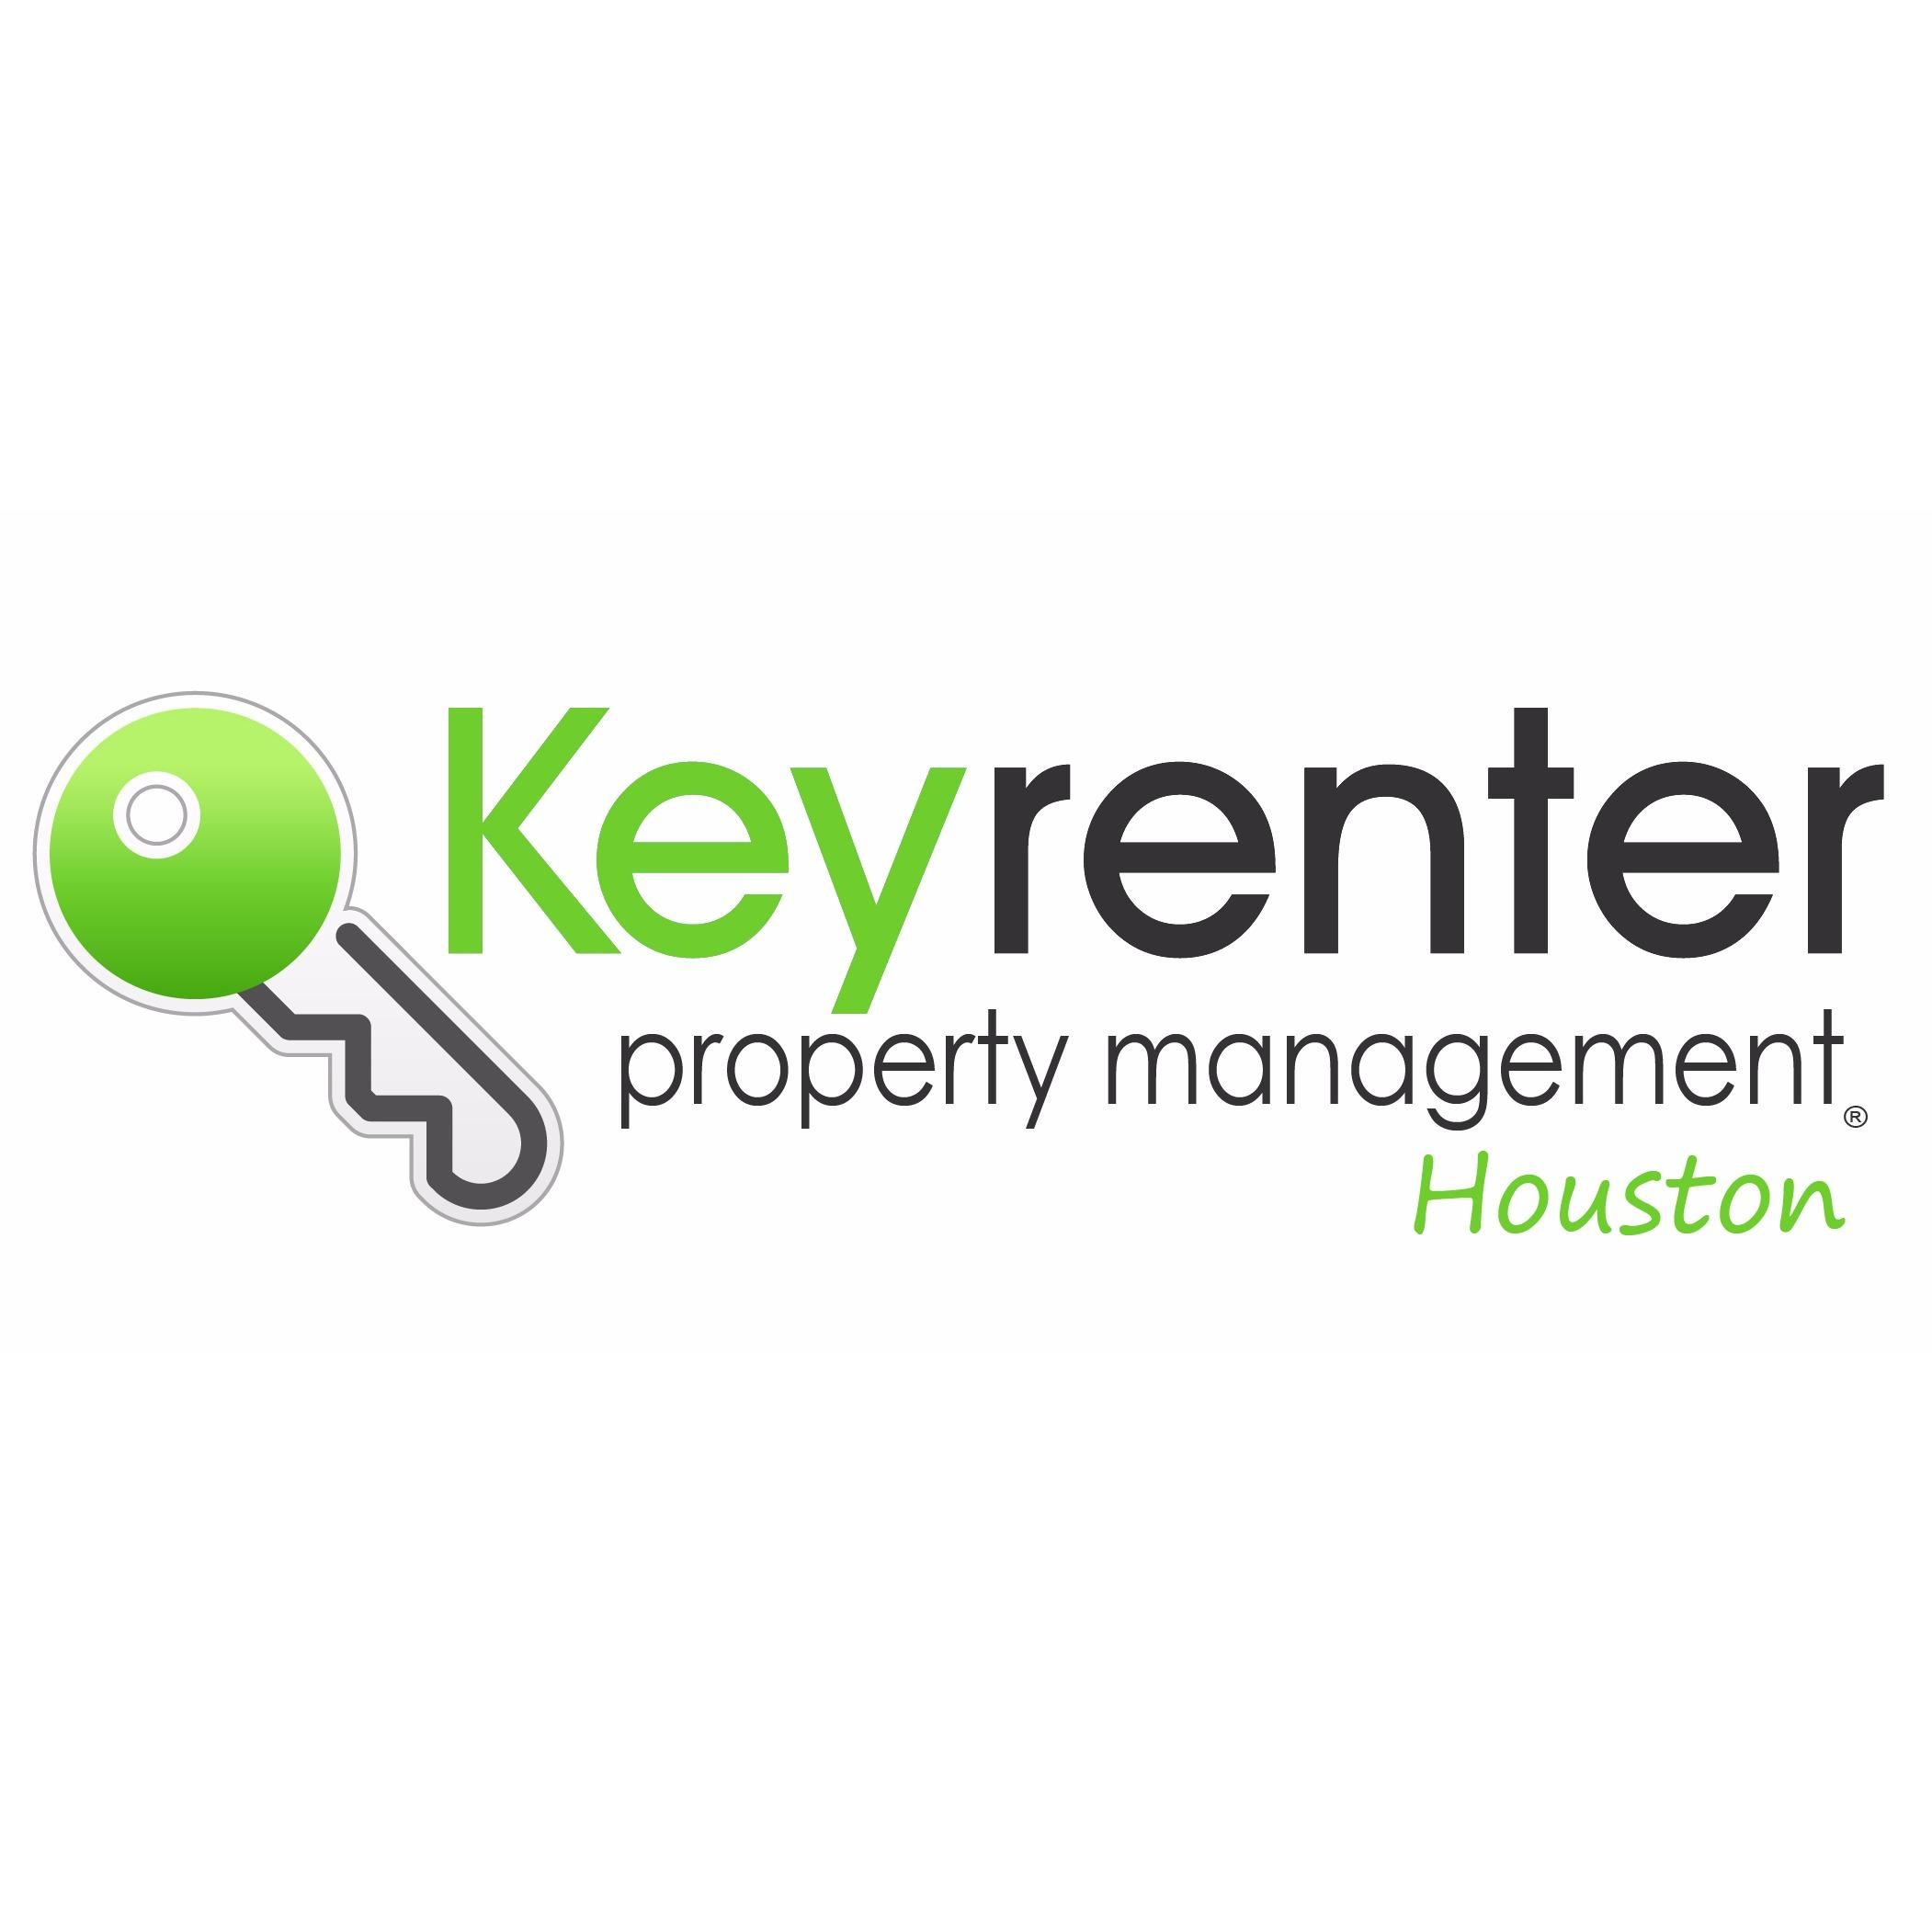 Keyrenter Property Management Houston